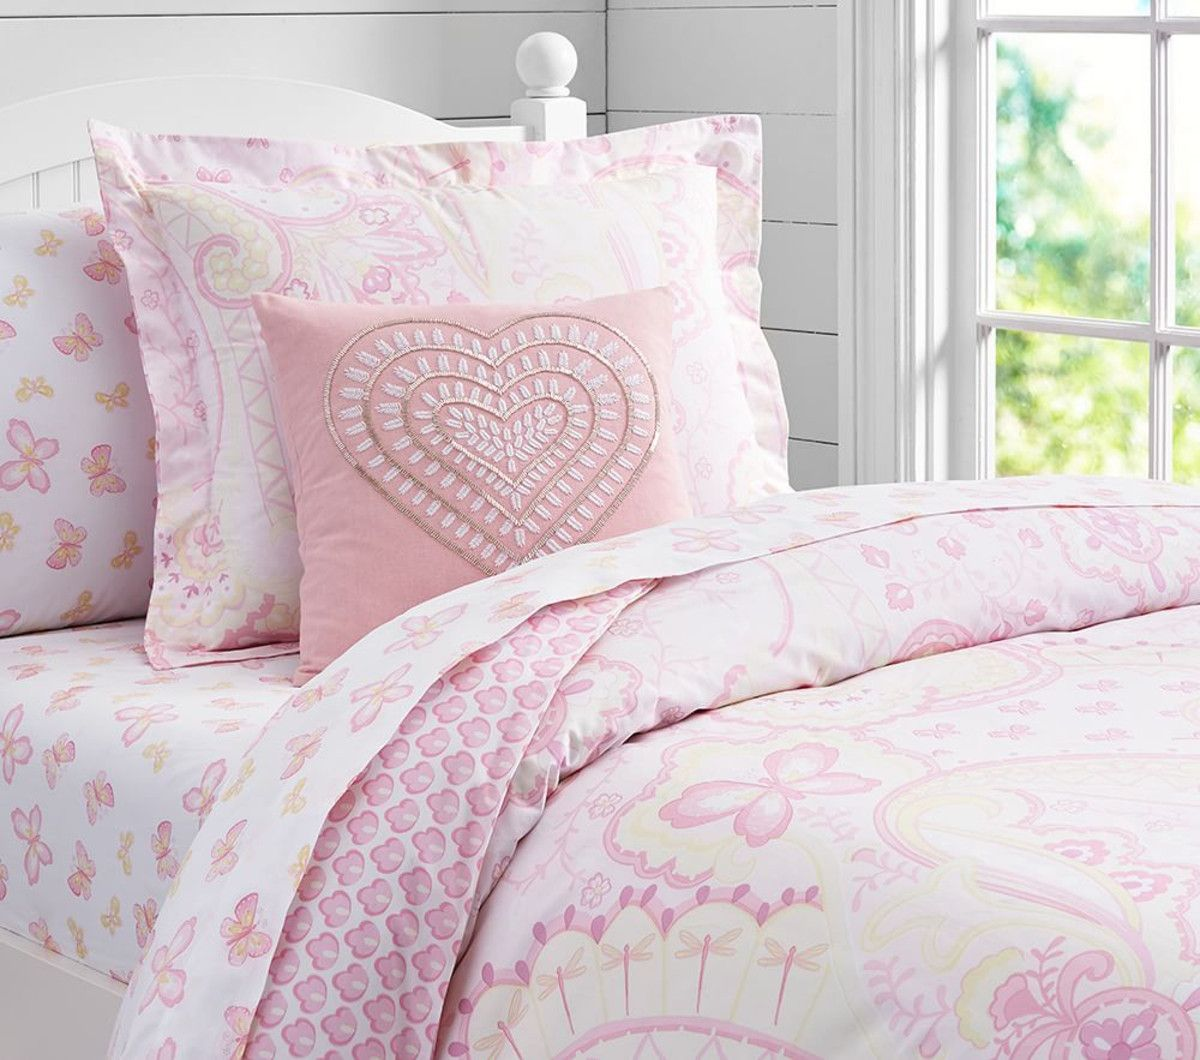 Mallory Paisley Quilt Cover, Pink on sale 94 pottery barn